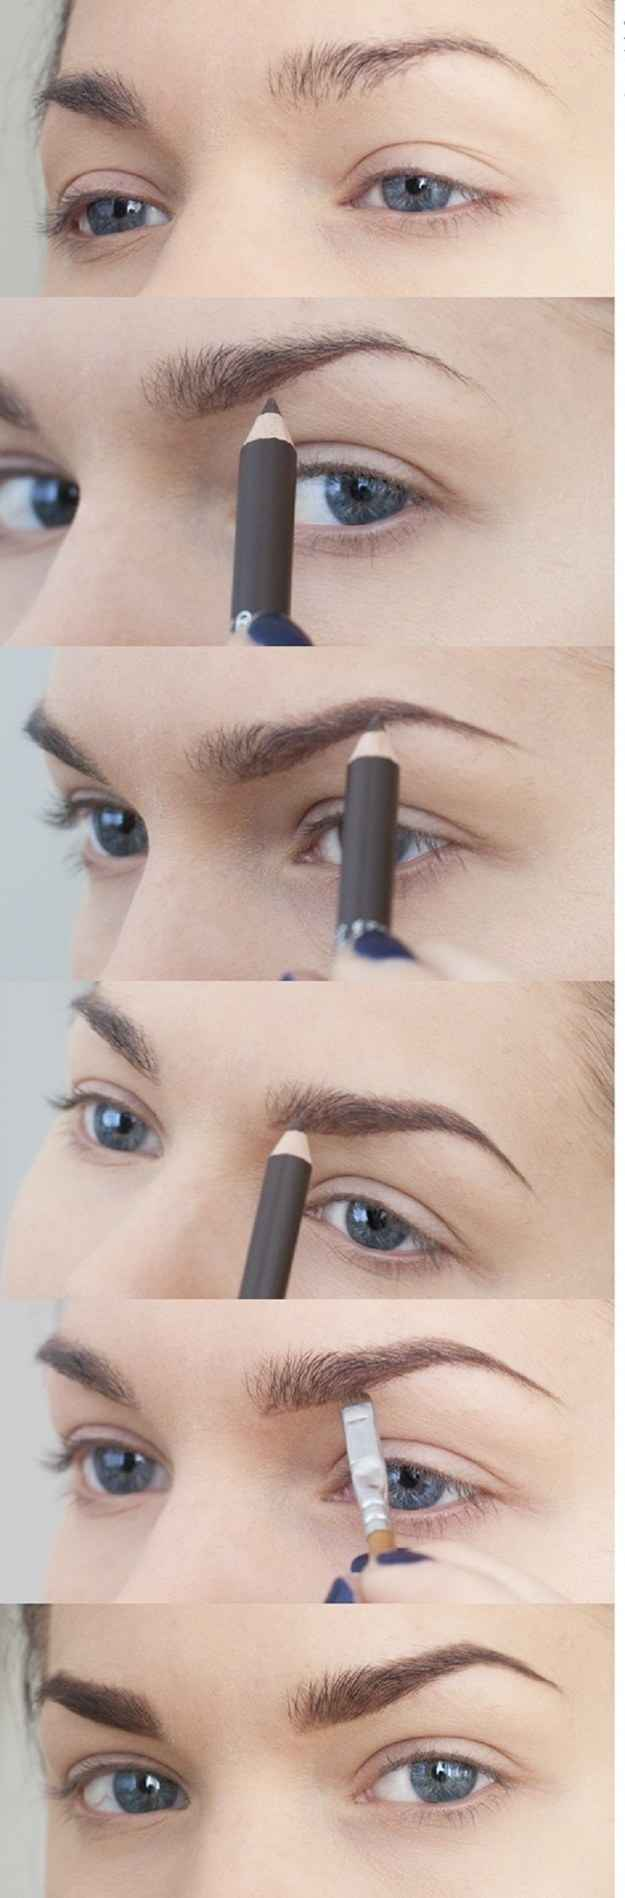 Fill in thin brows with a pencil or use brow powder and a brush.